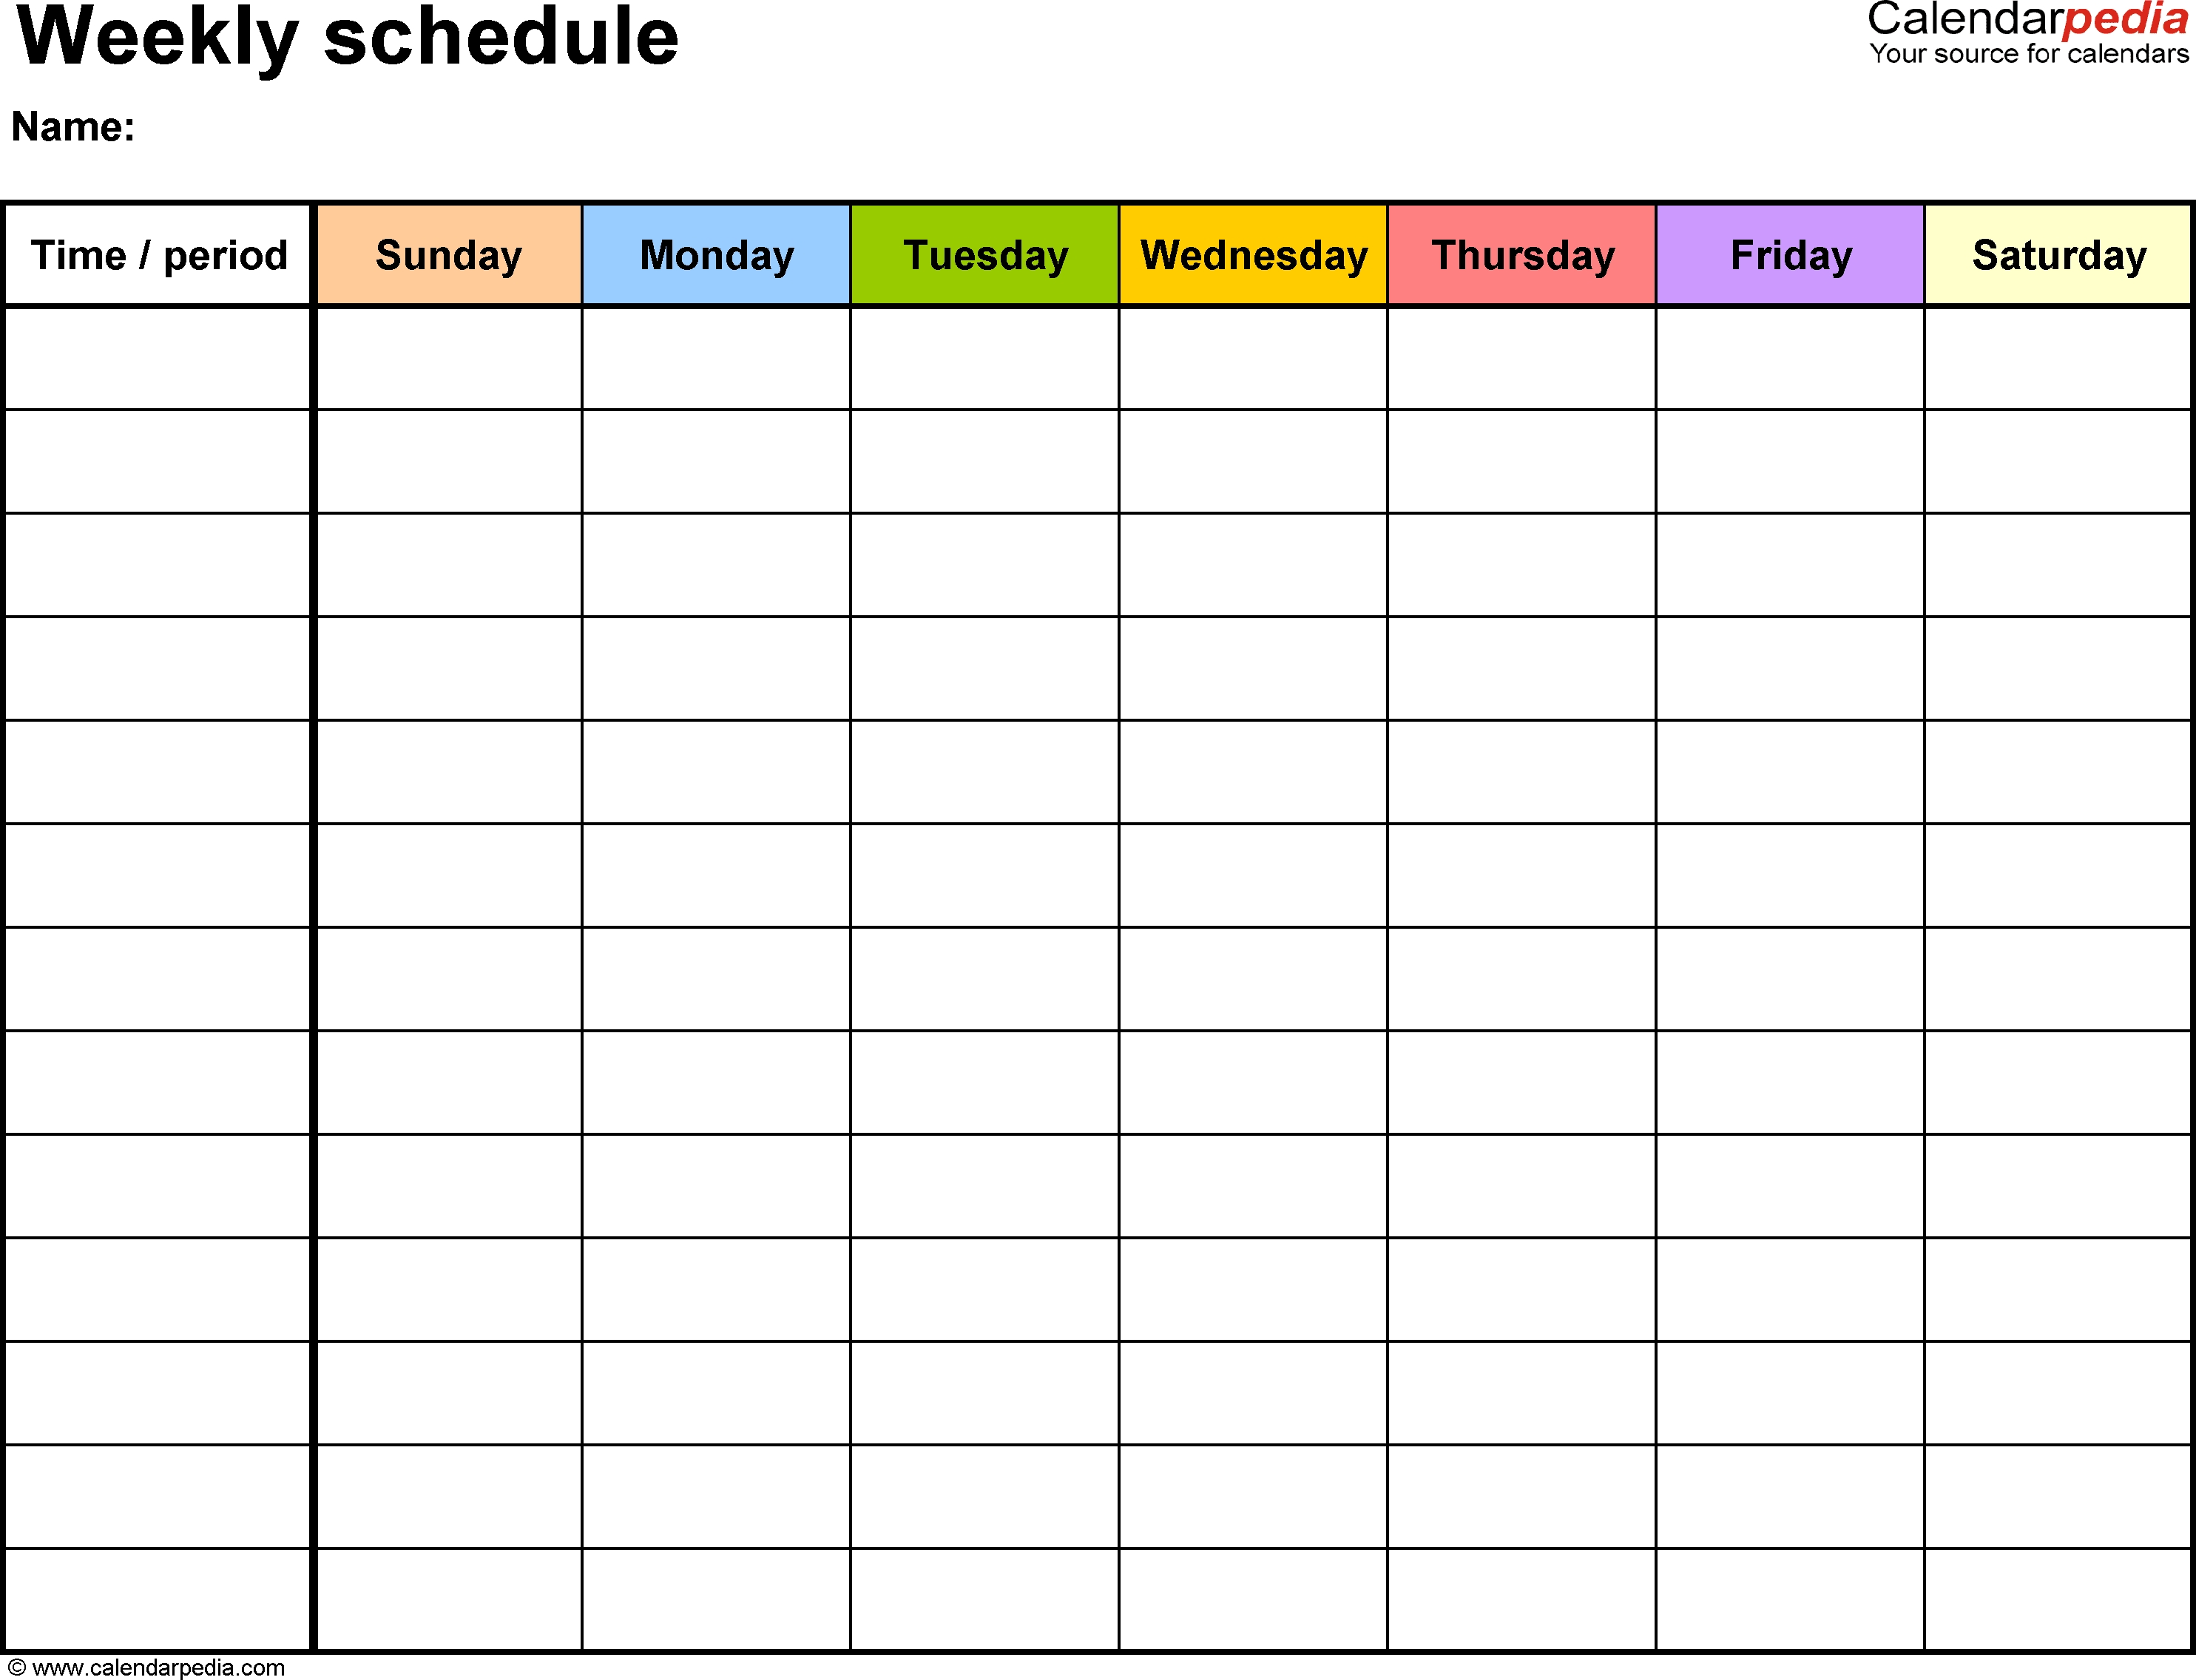 Free Weekly Schedule Templates For Excel - 18 Templates  Free One Month Schedule Templates